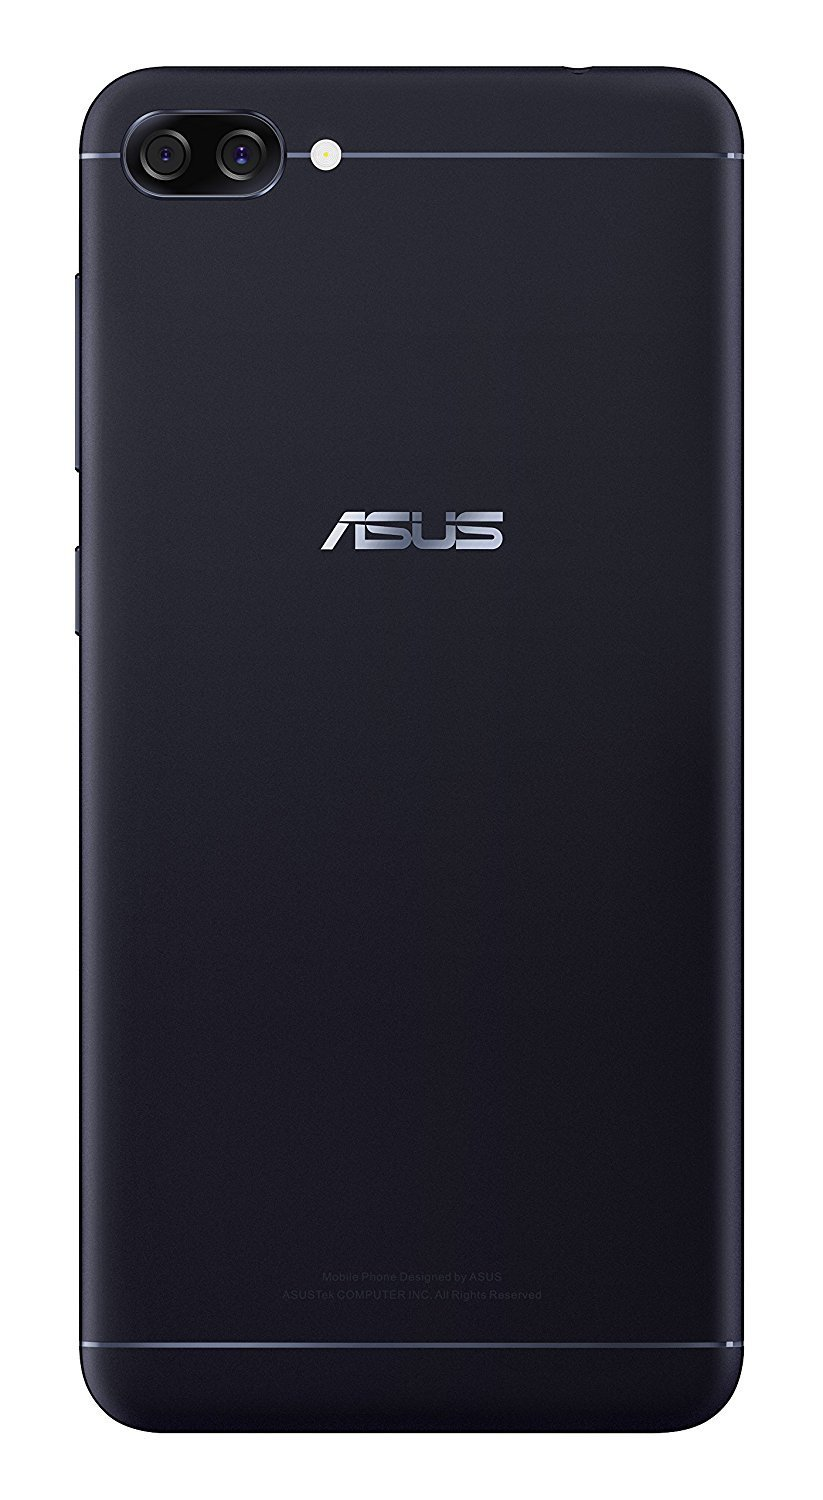 Asus Zenfone 4 Max Zc520kl Vs Xiaomi Redmi Note 4x Comparison 64gb Black Stores That Sells 3gb 32gb